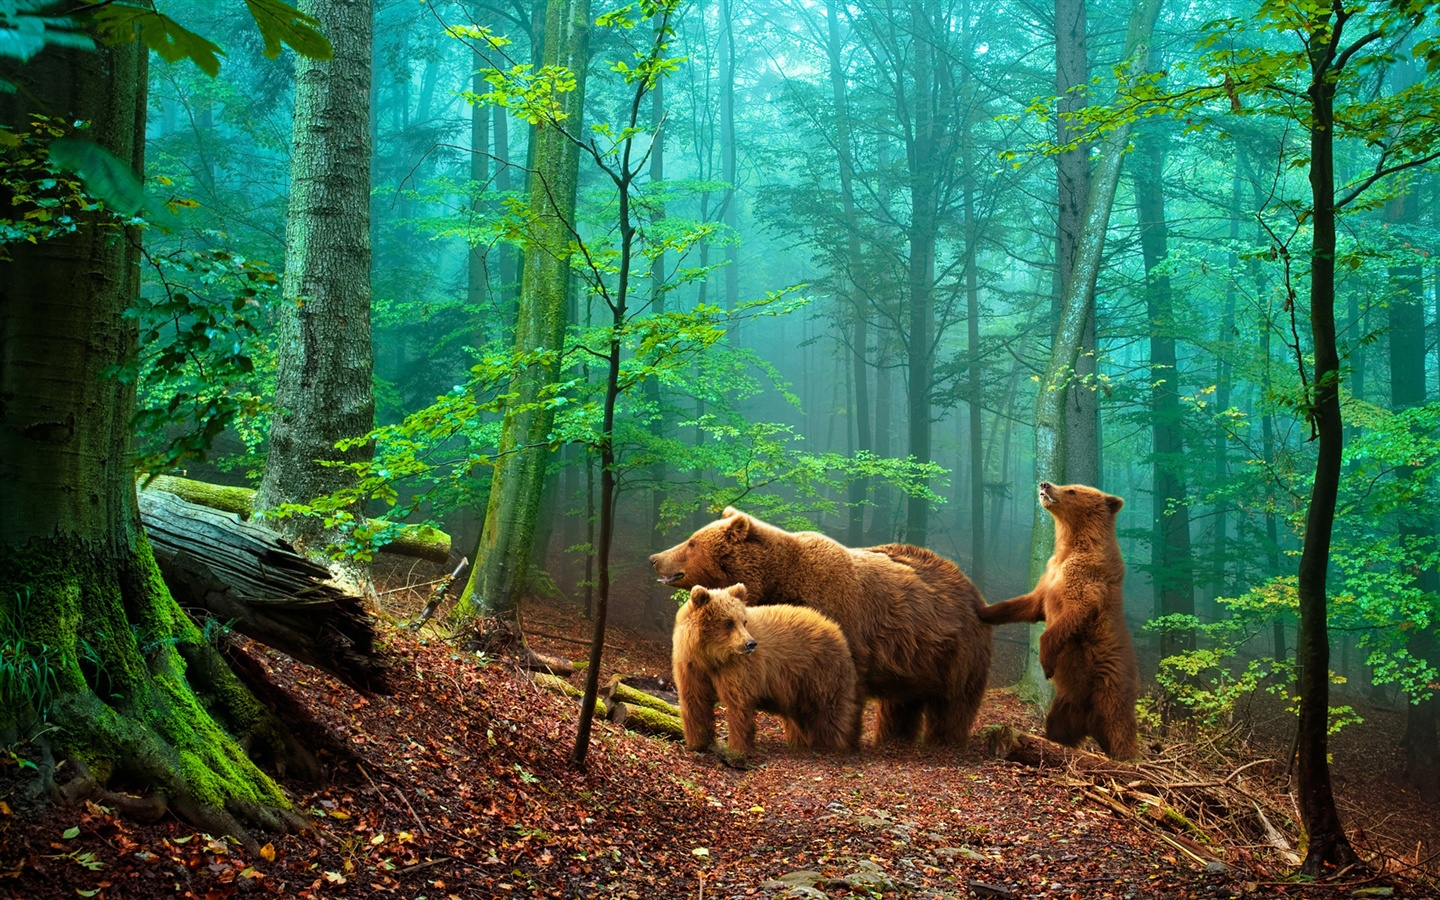 Brown bears in the forest wallpaper - 1440x900